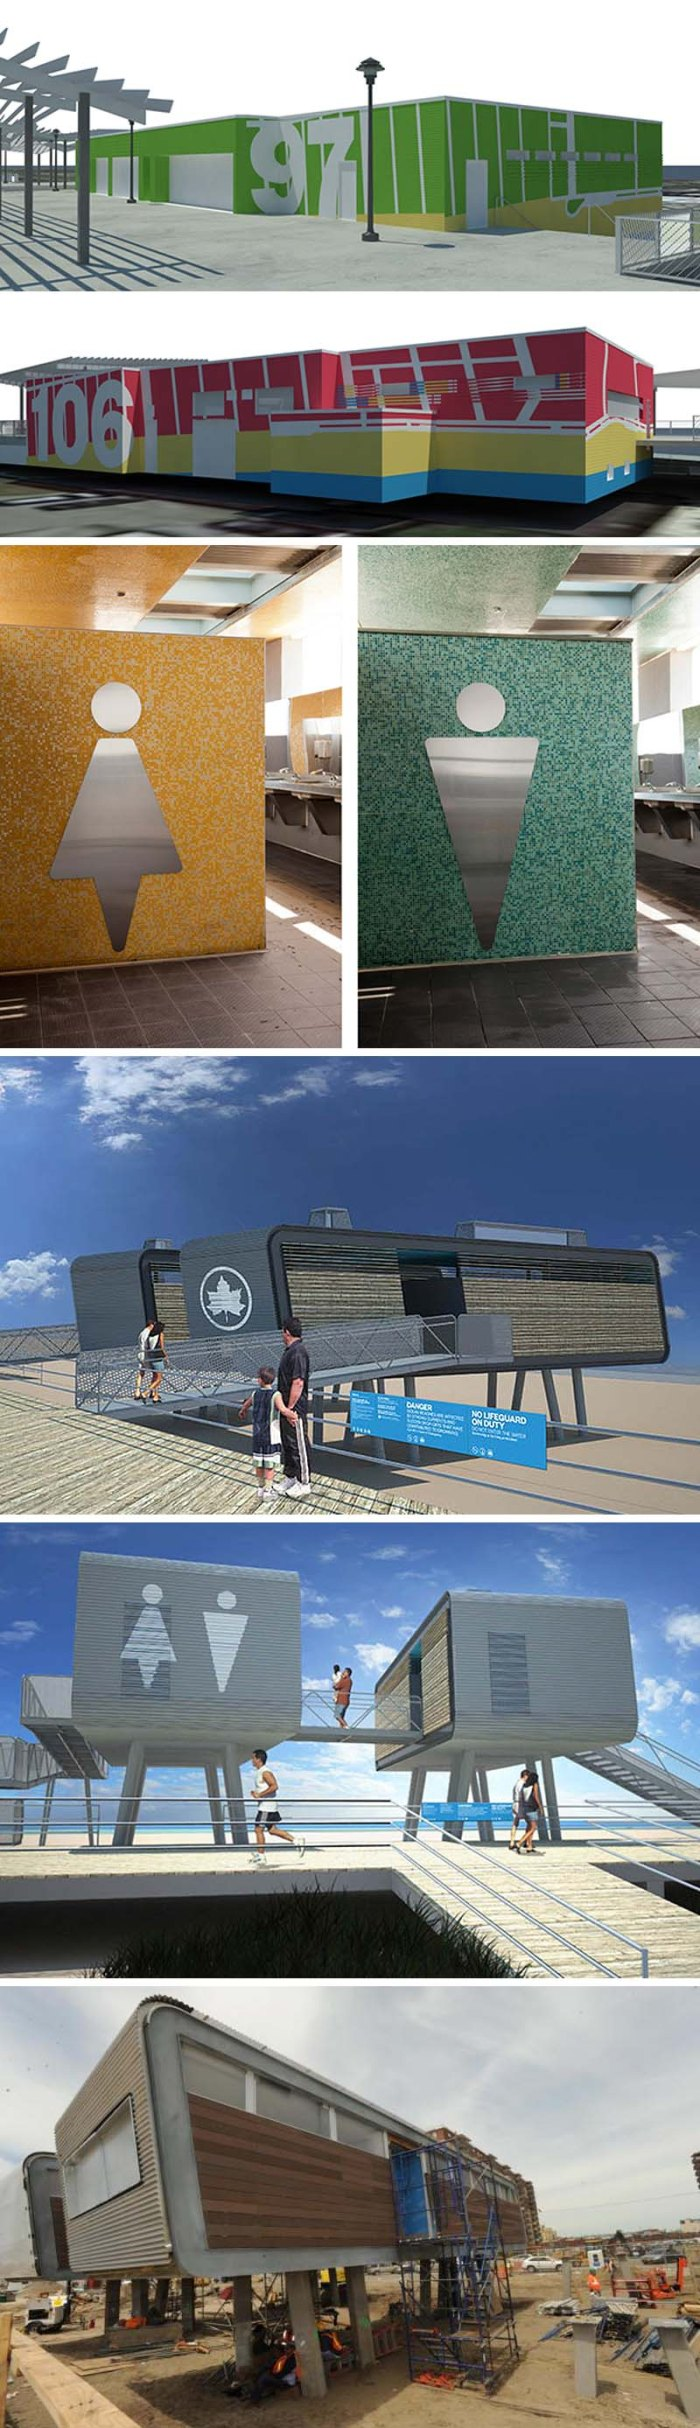 NYC Beaches - Signage   Location:  Rockaway Beach    Graphics:  Pentagram Design, Rockaway by Garrison Architects